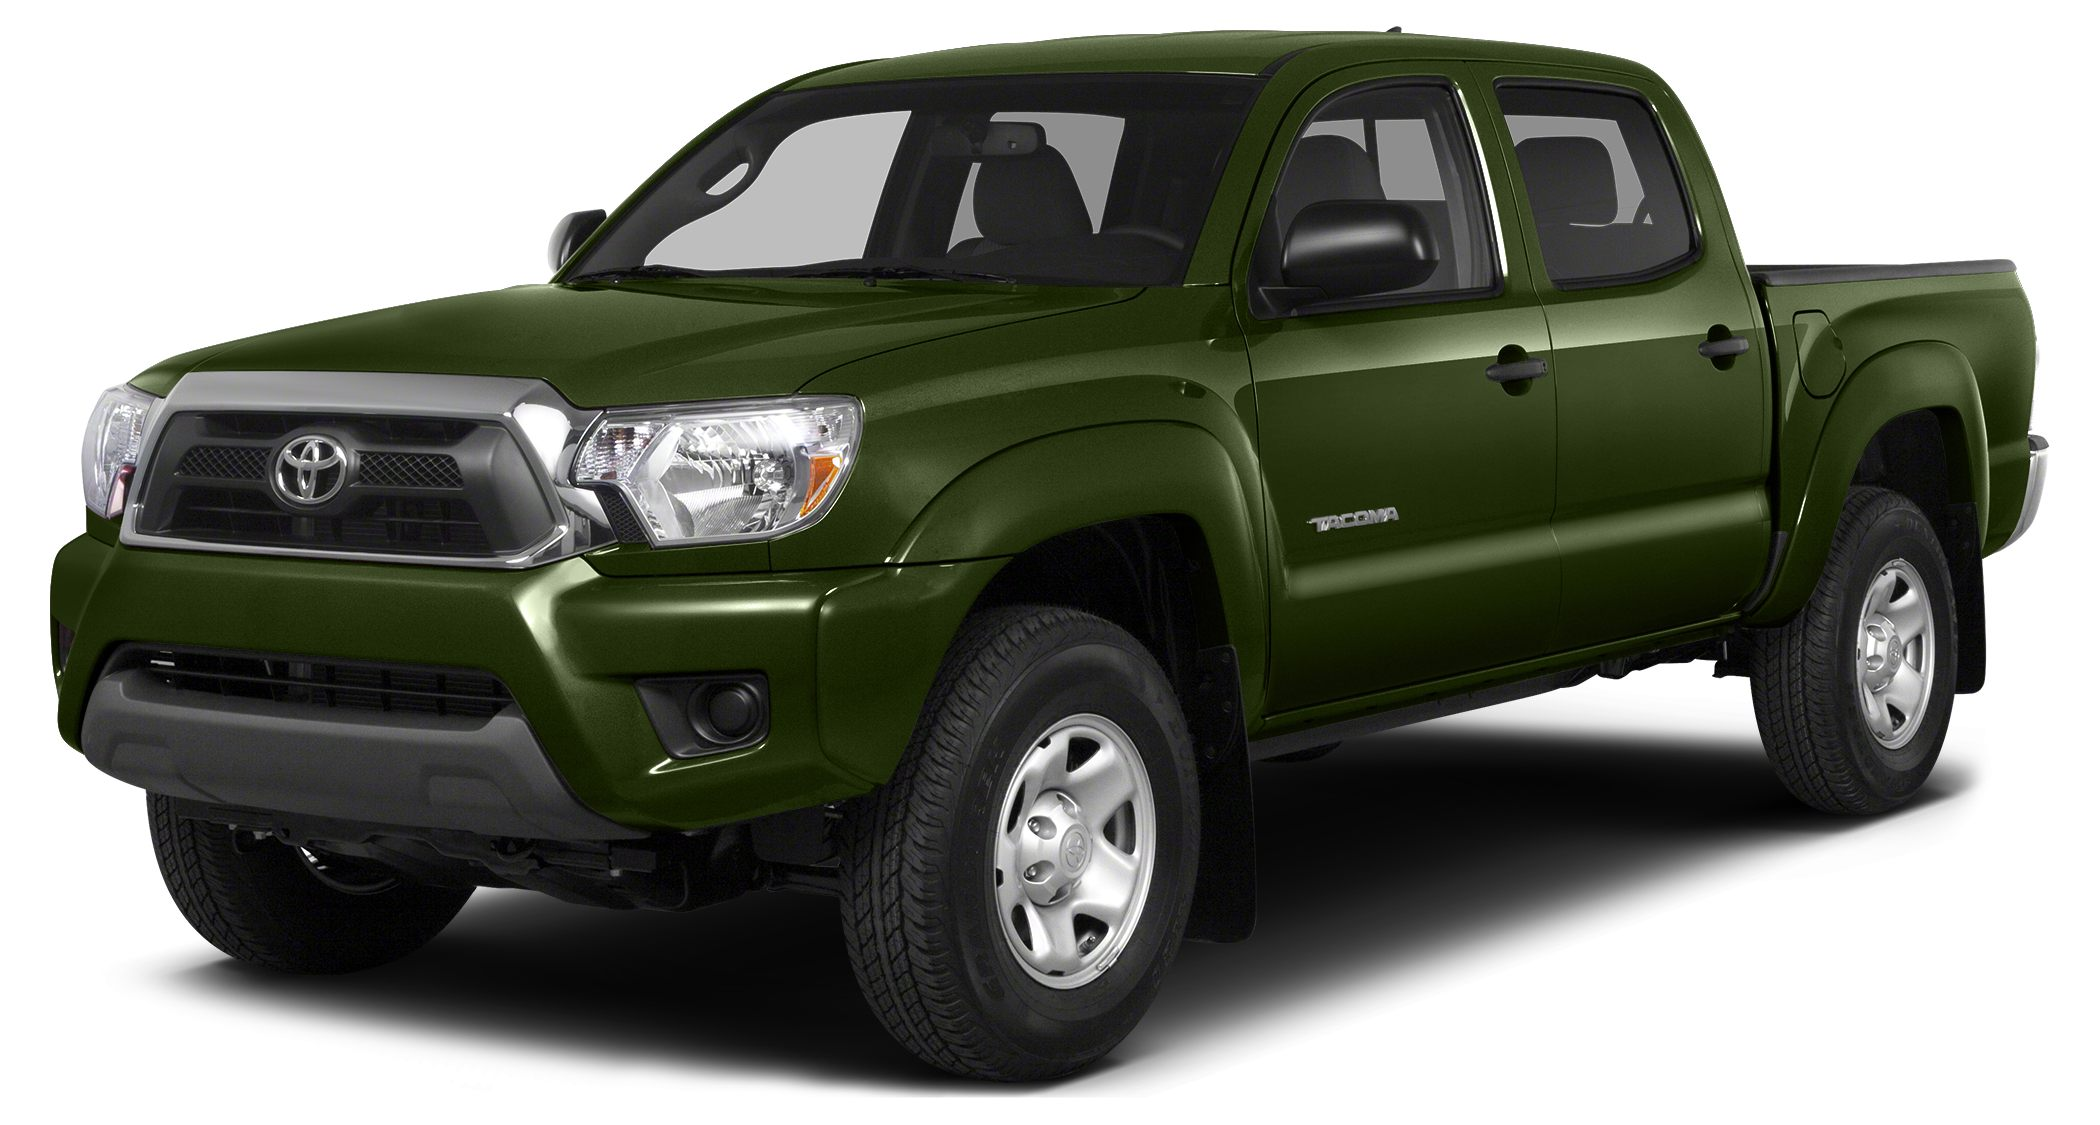 2013 Toyota Tacoma Base Auto Check 1 Owner 40L V6 EFI DOHC 24V and 4WD Isnt it time for a Toyo